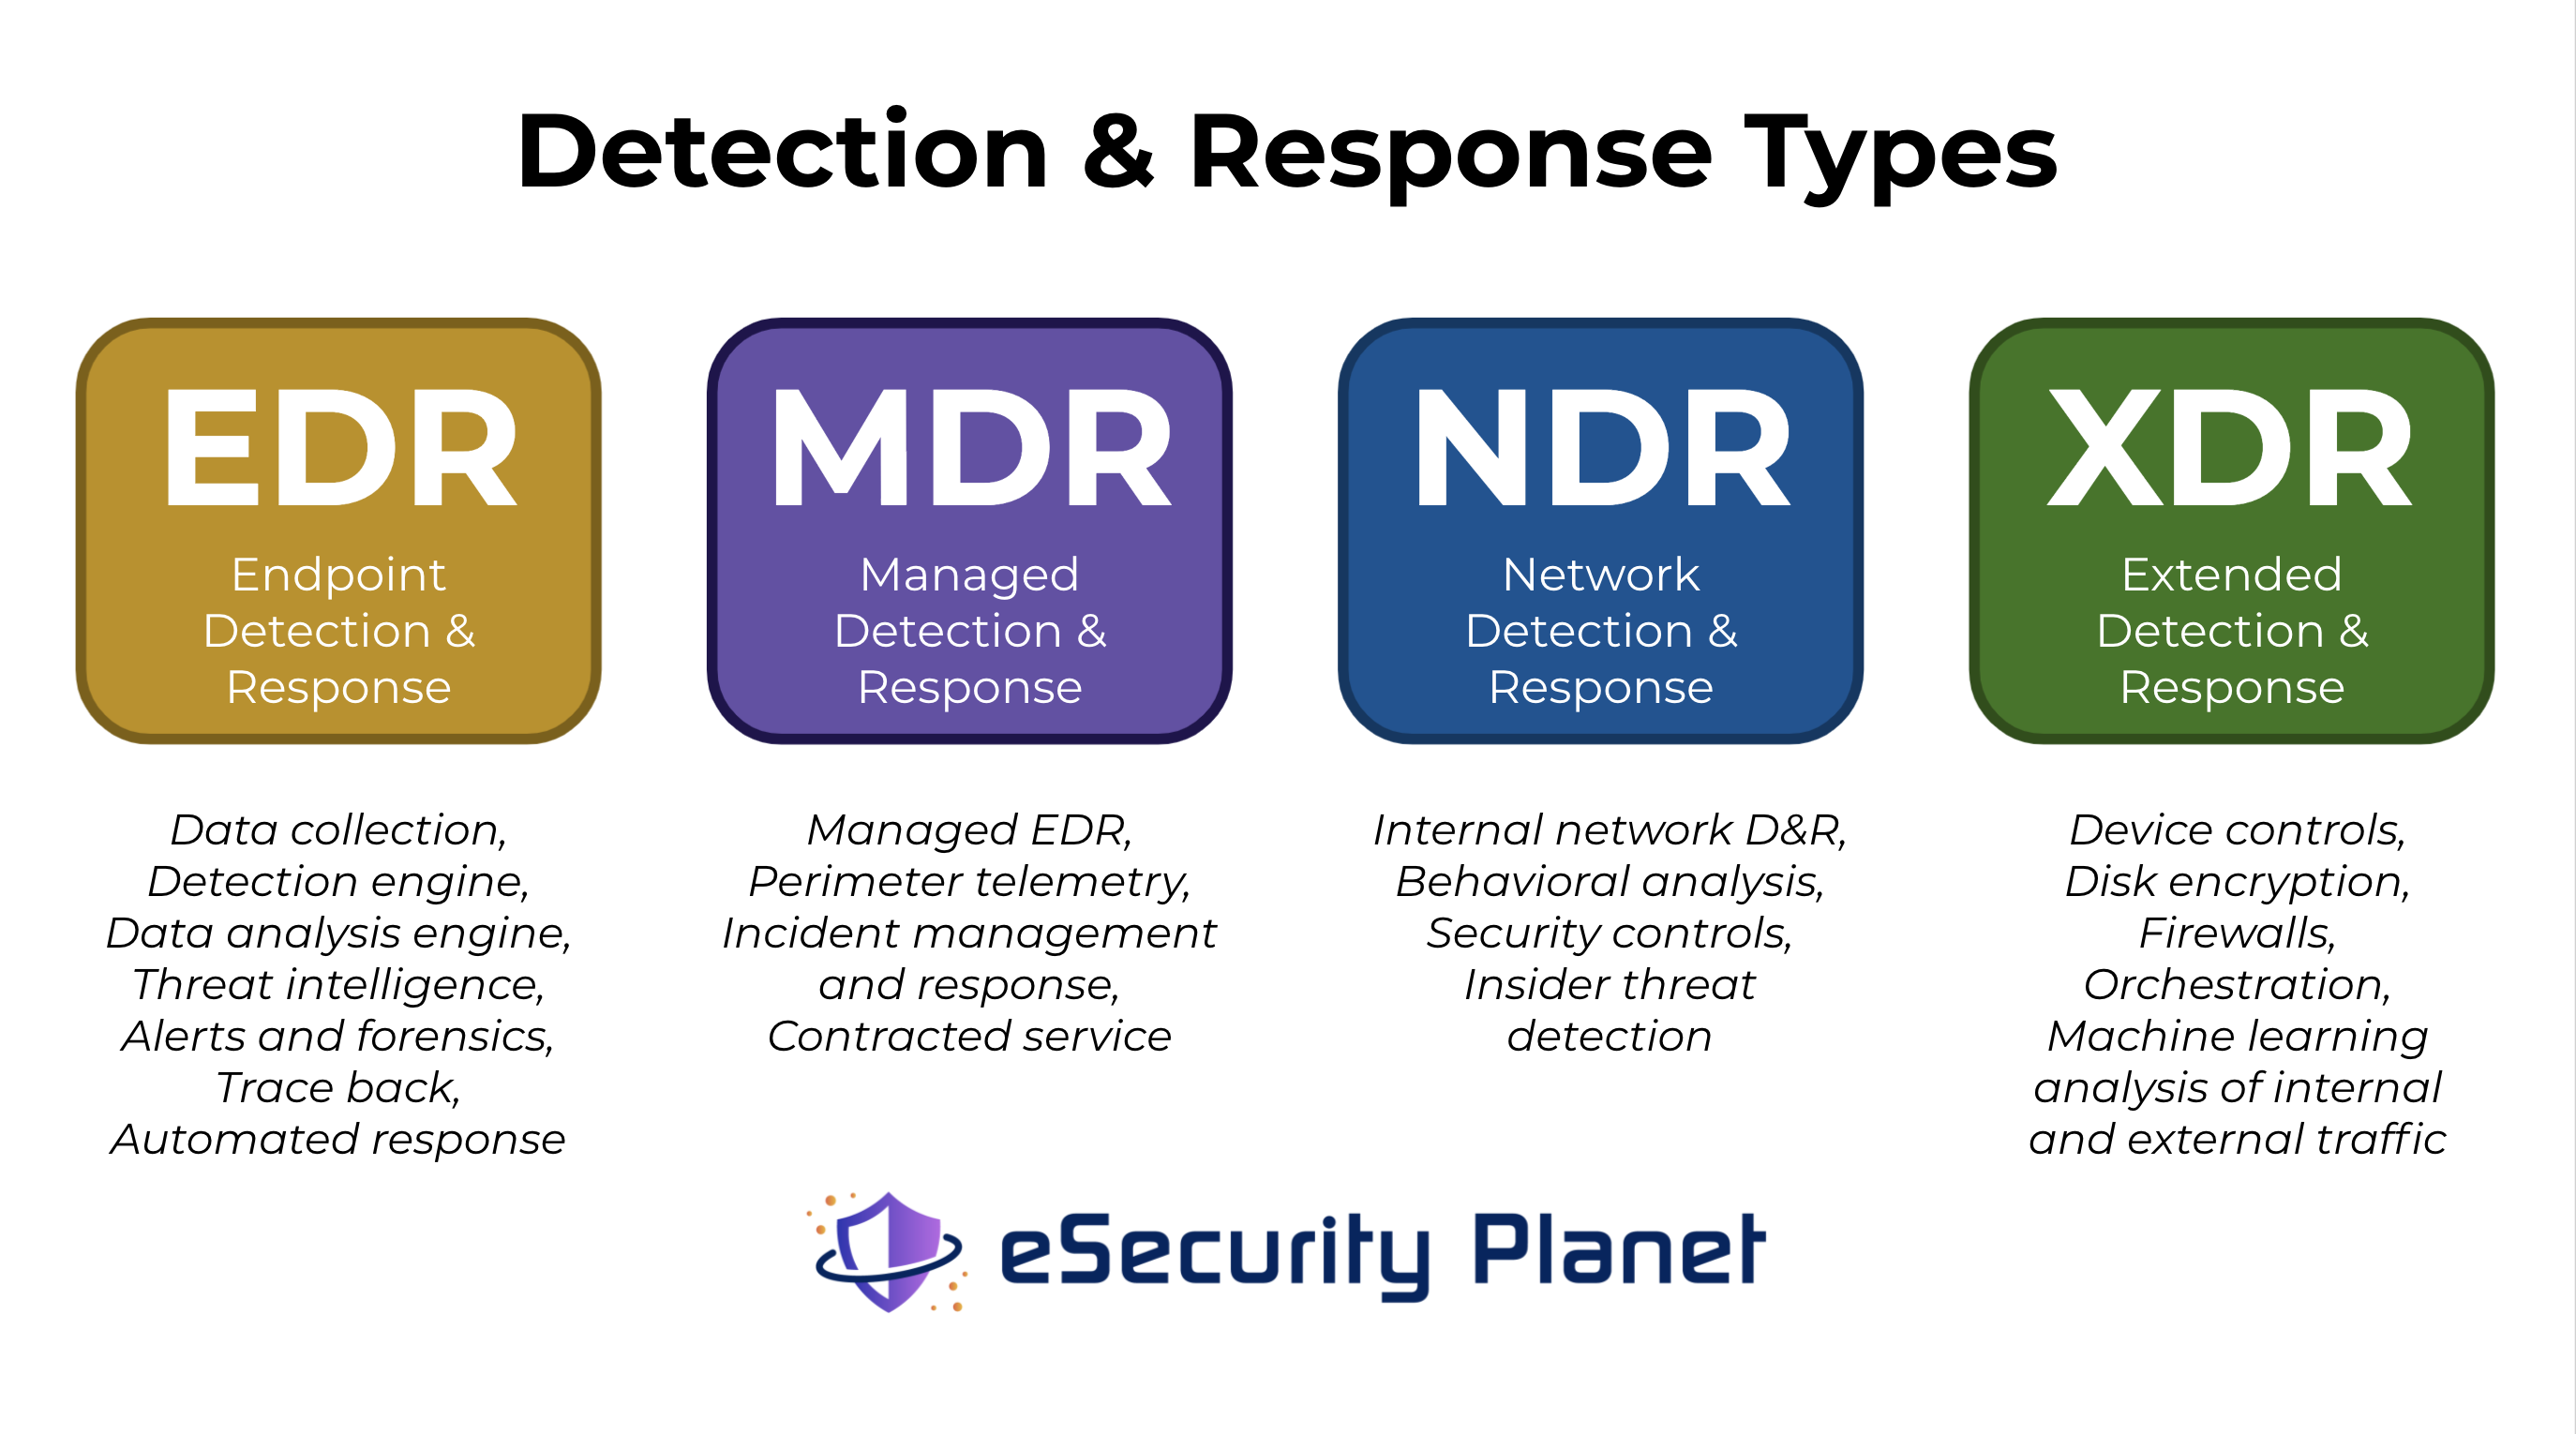 A graphic designed by Sam Ingalls that show how EDR, MDR, NDR, and XDR differ in their capabilities .